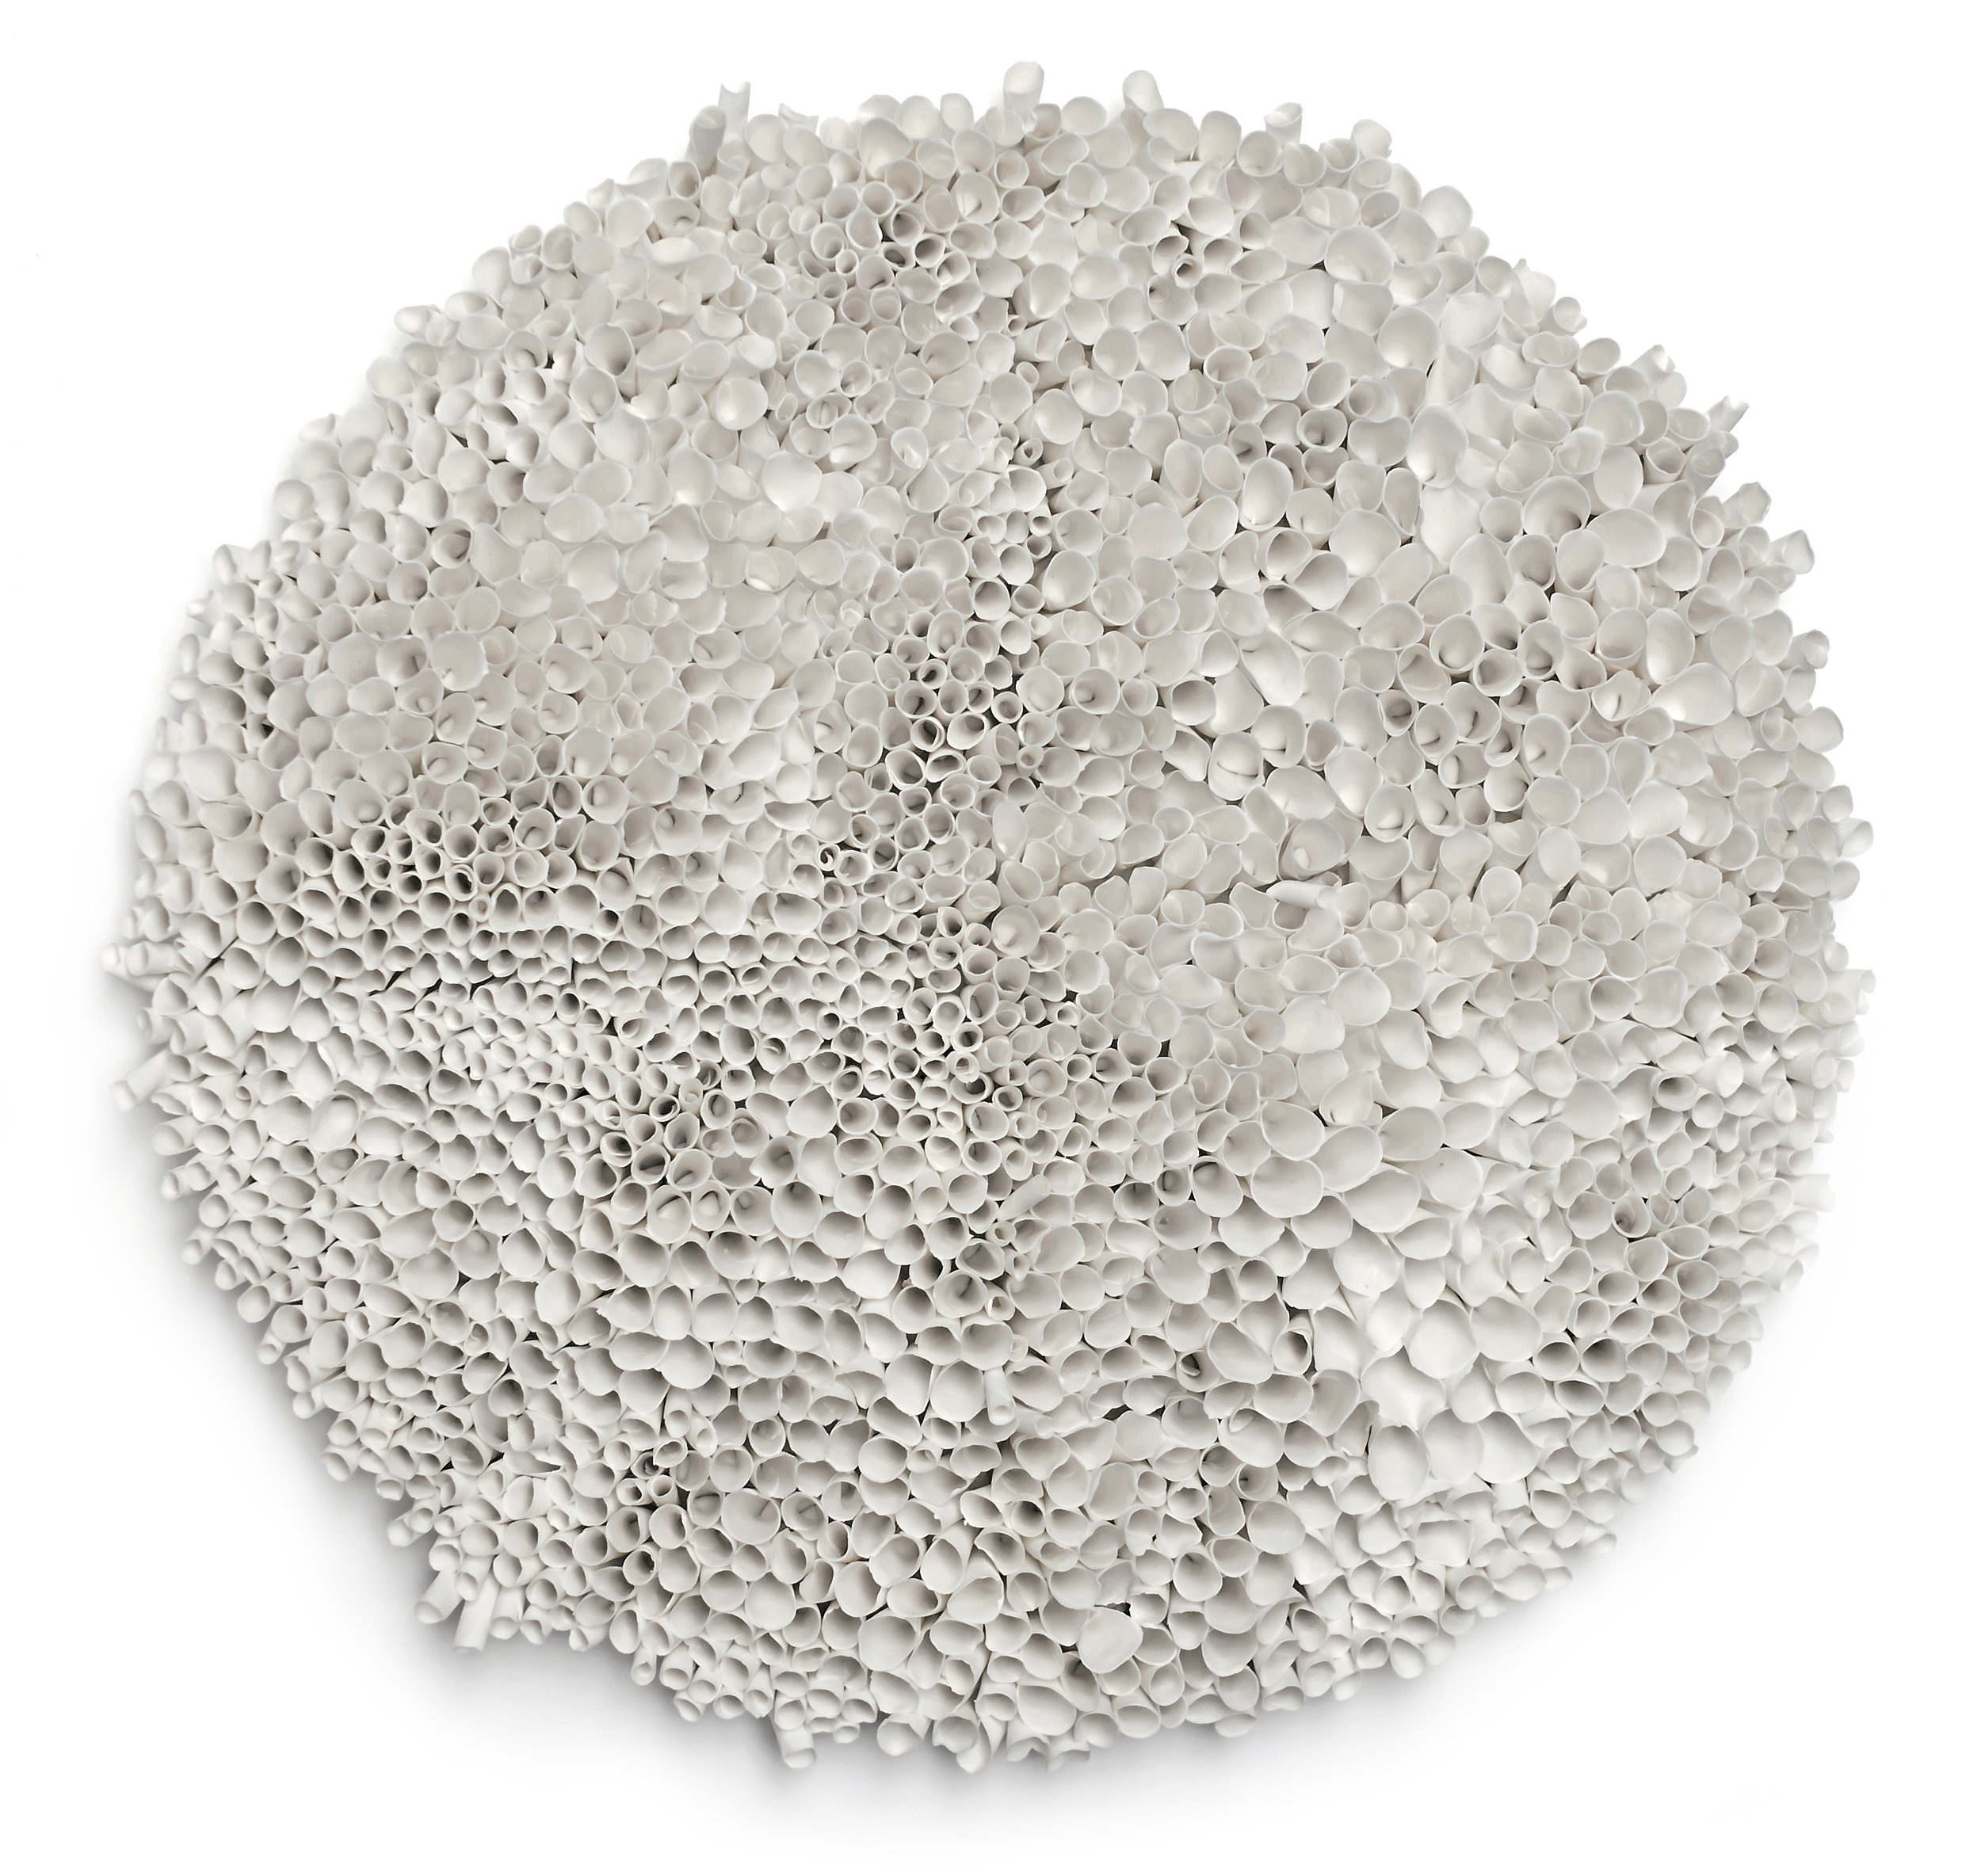 Coral Circle White , 2019, Porcelain, 19 1/2 x 19 1/2 inches